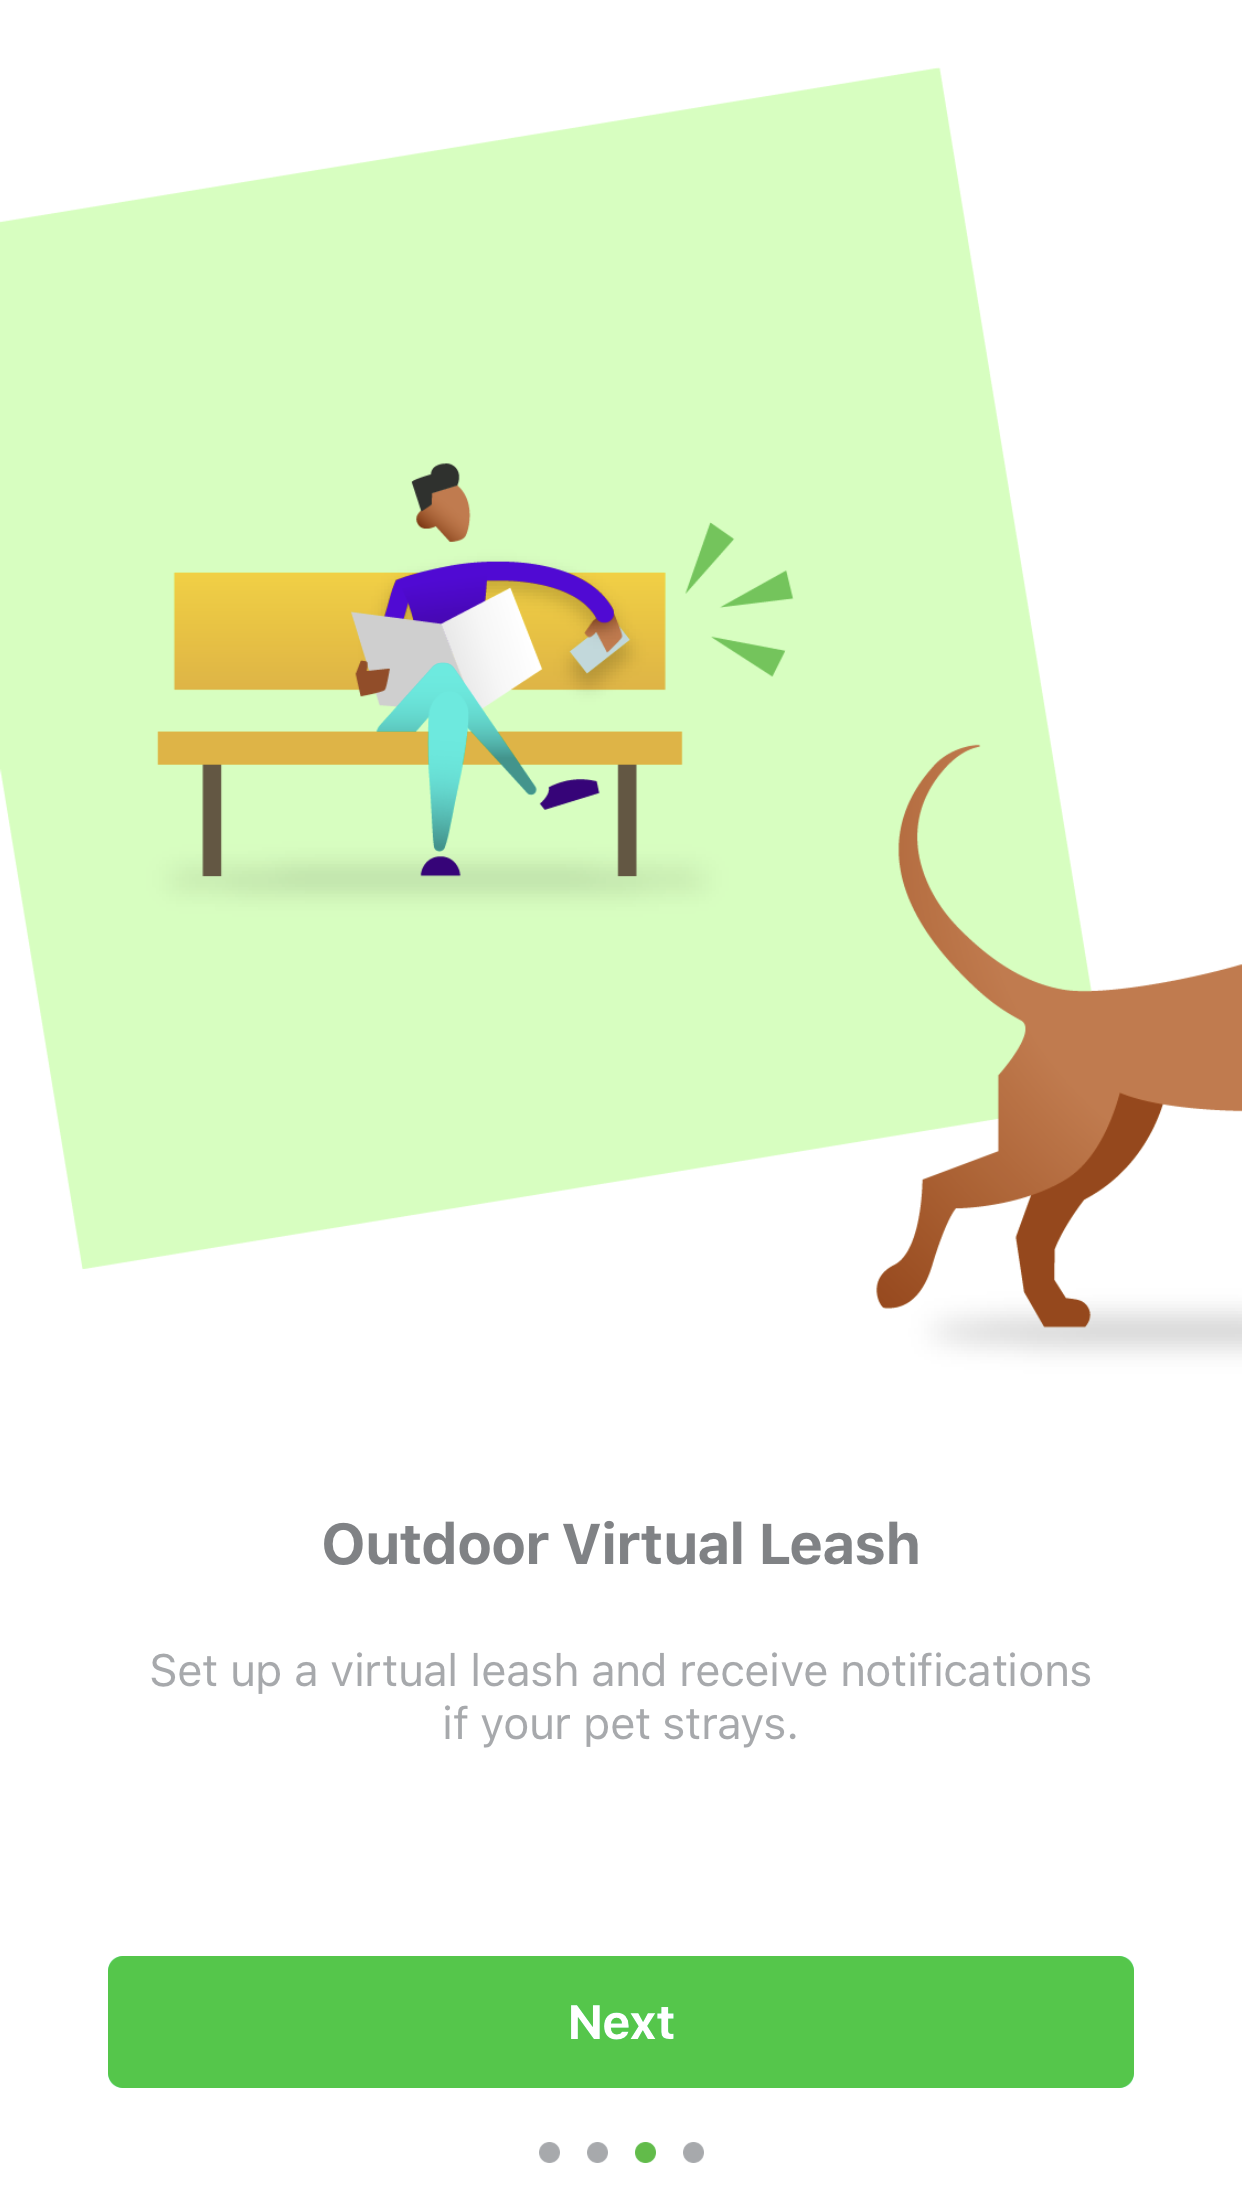 - VIRTUAL LEASH: You can set a virtual leash for your pet so that if they go any farther than the leash allows, you will receive an alert.